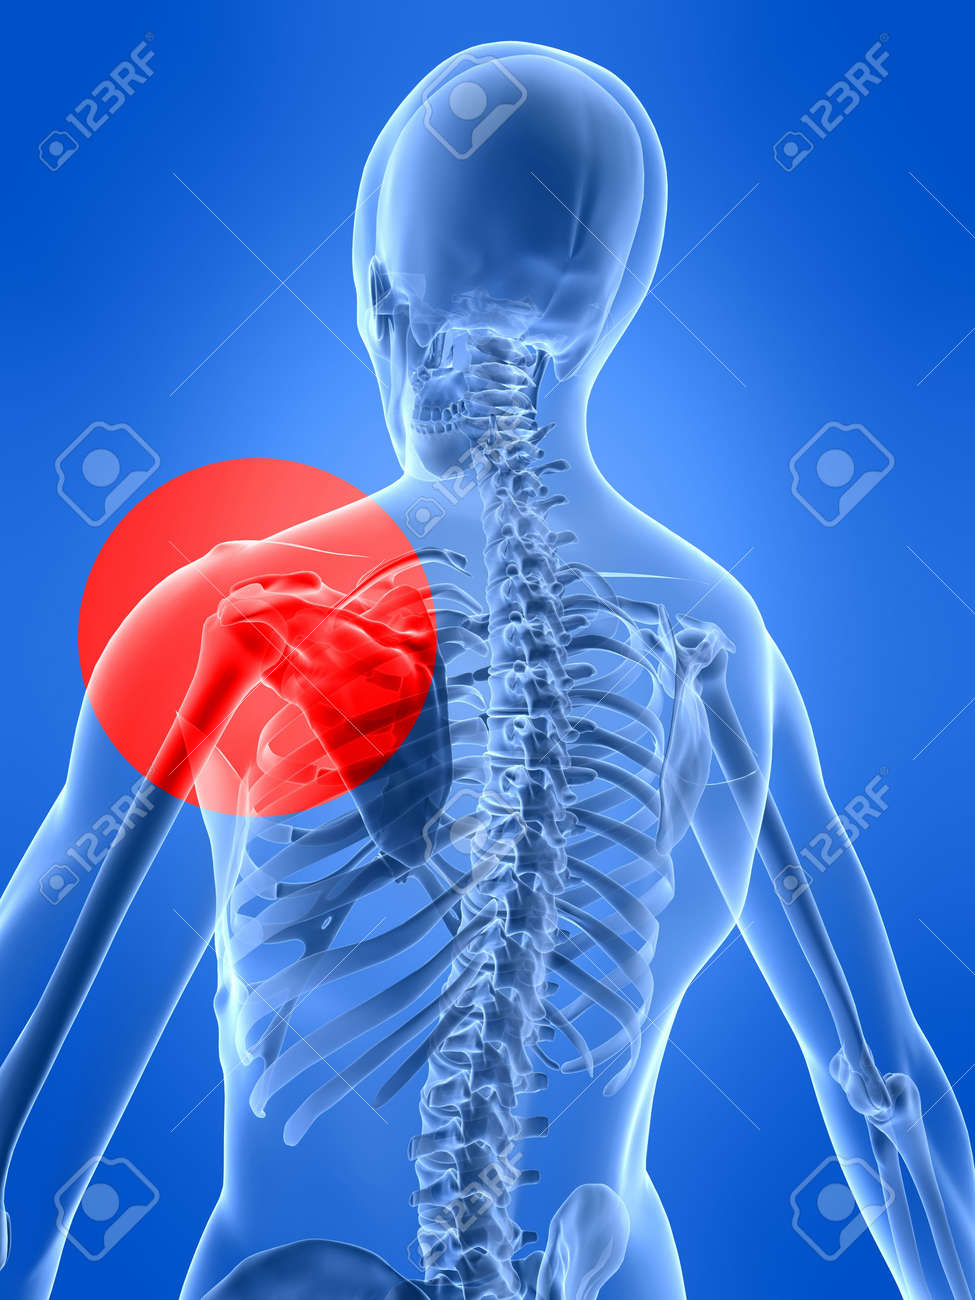 shoulder inflammation Stock Photo - 2912417